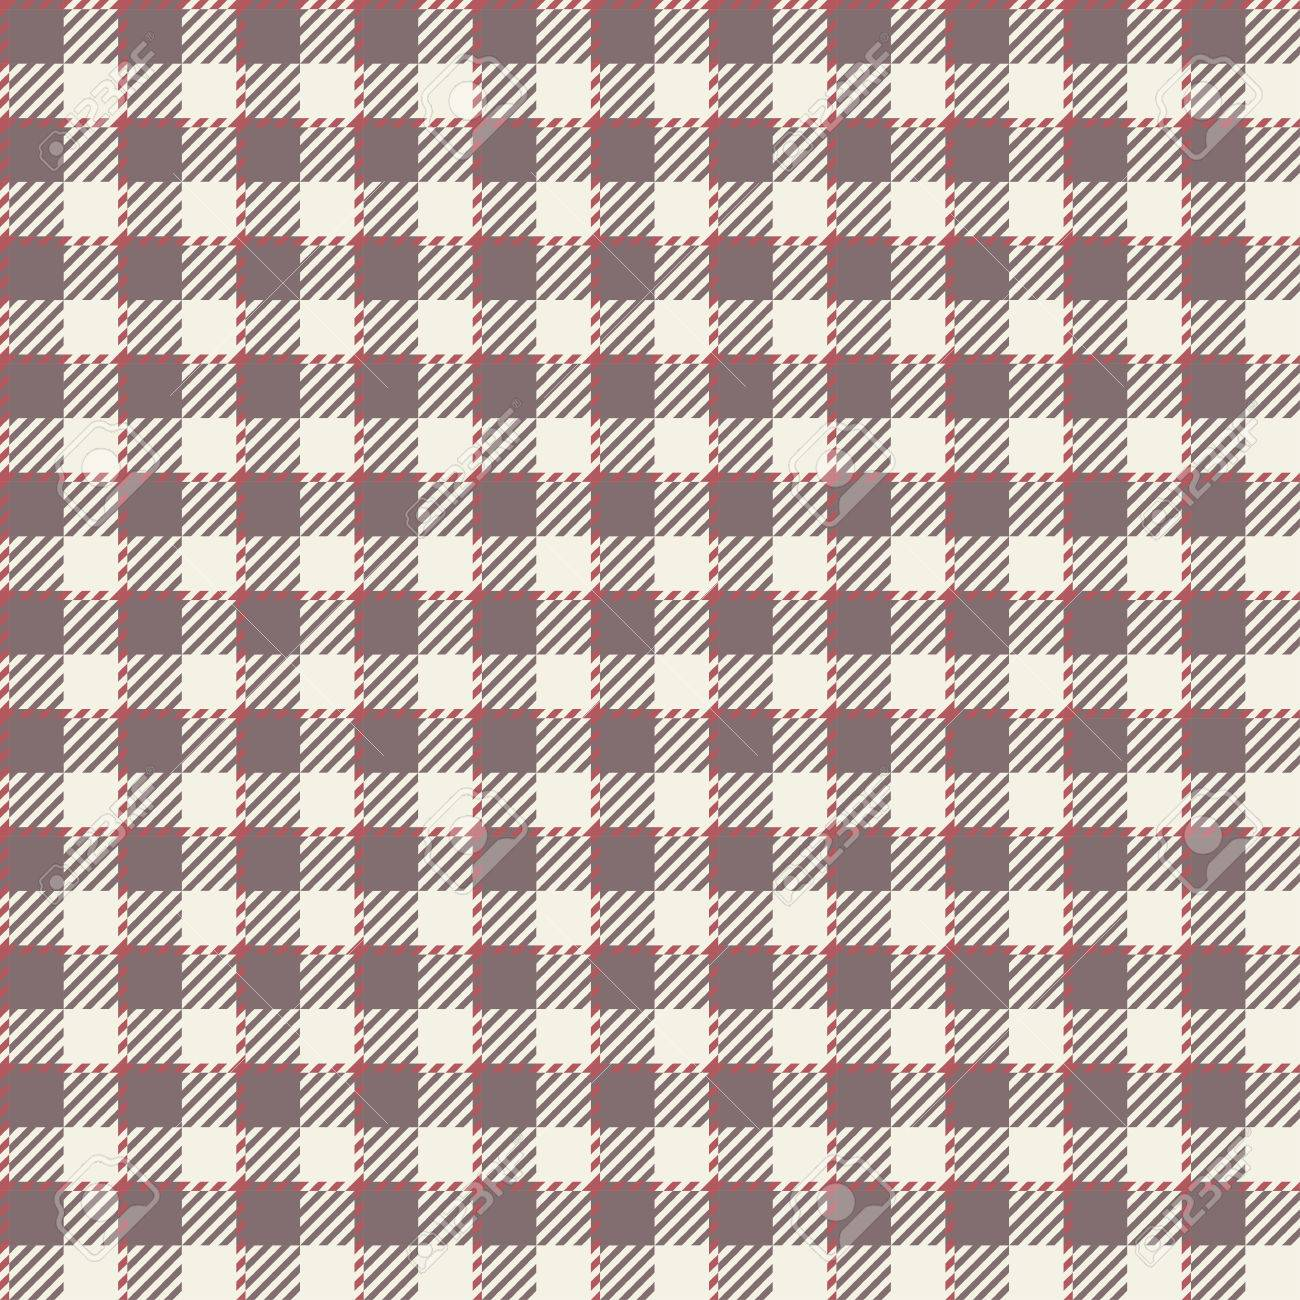 Ordinaire Seamless Brown Checkered Table Cloth Pattern For Background Design Stock  Vector   36056625